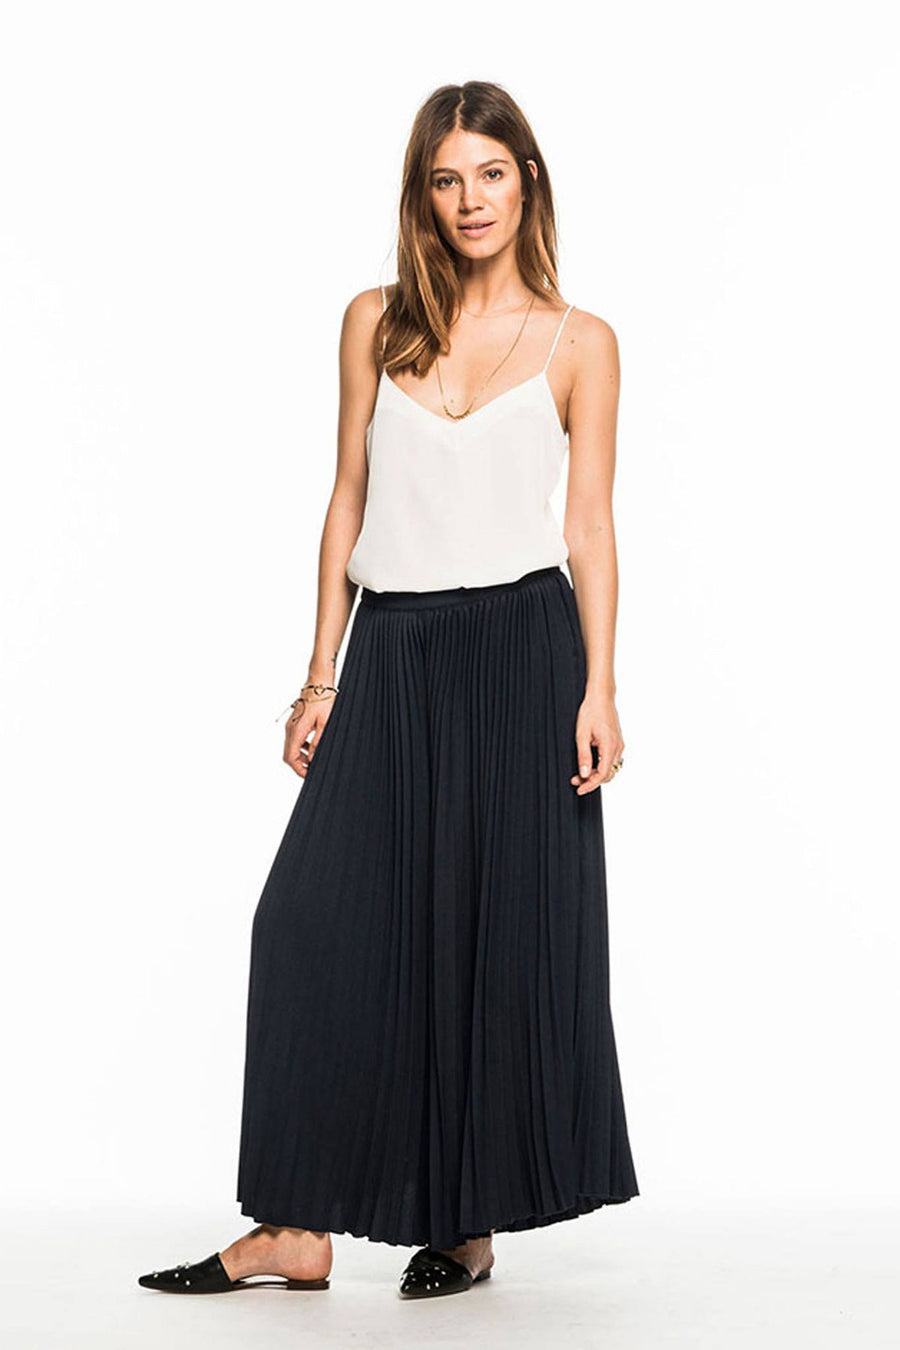 The Pleated Culottes by Maison Scotch by Maison Scotch Frockaholics.com